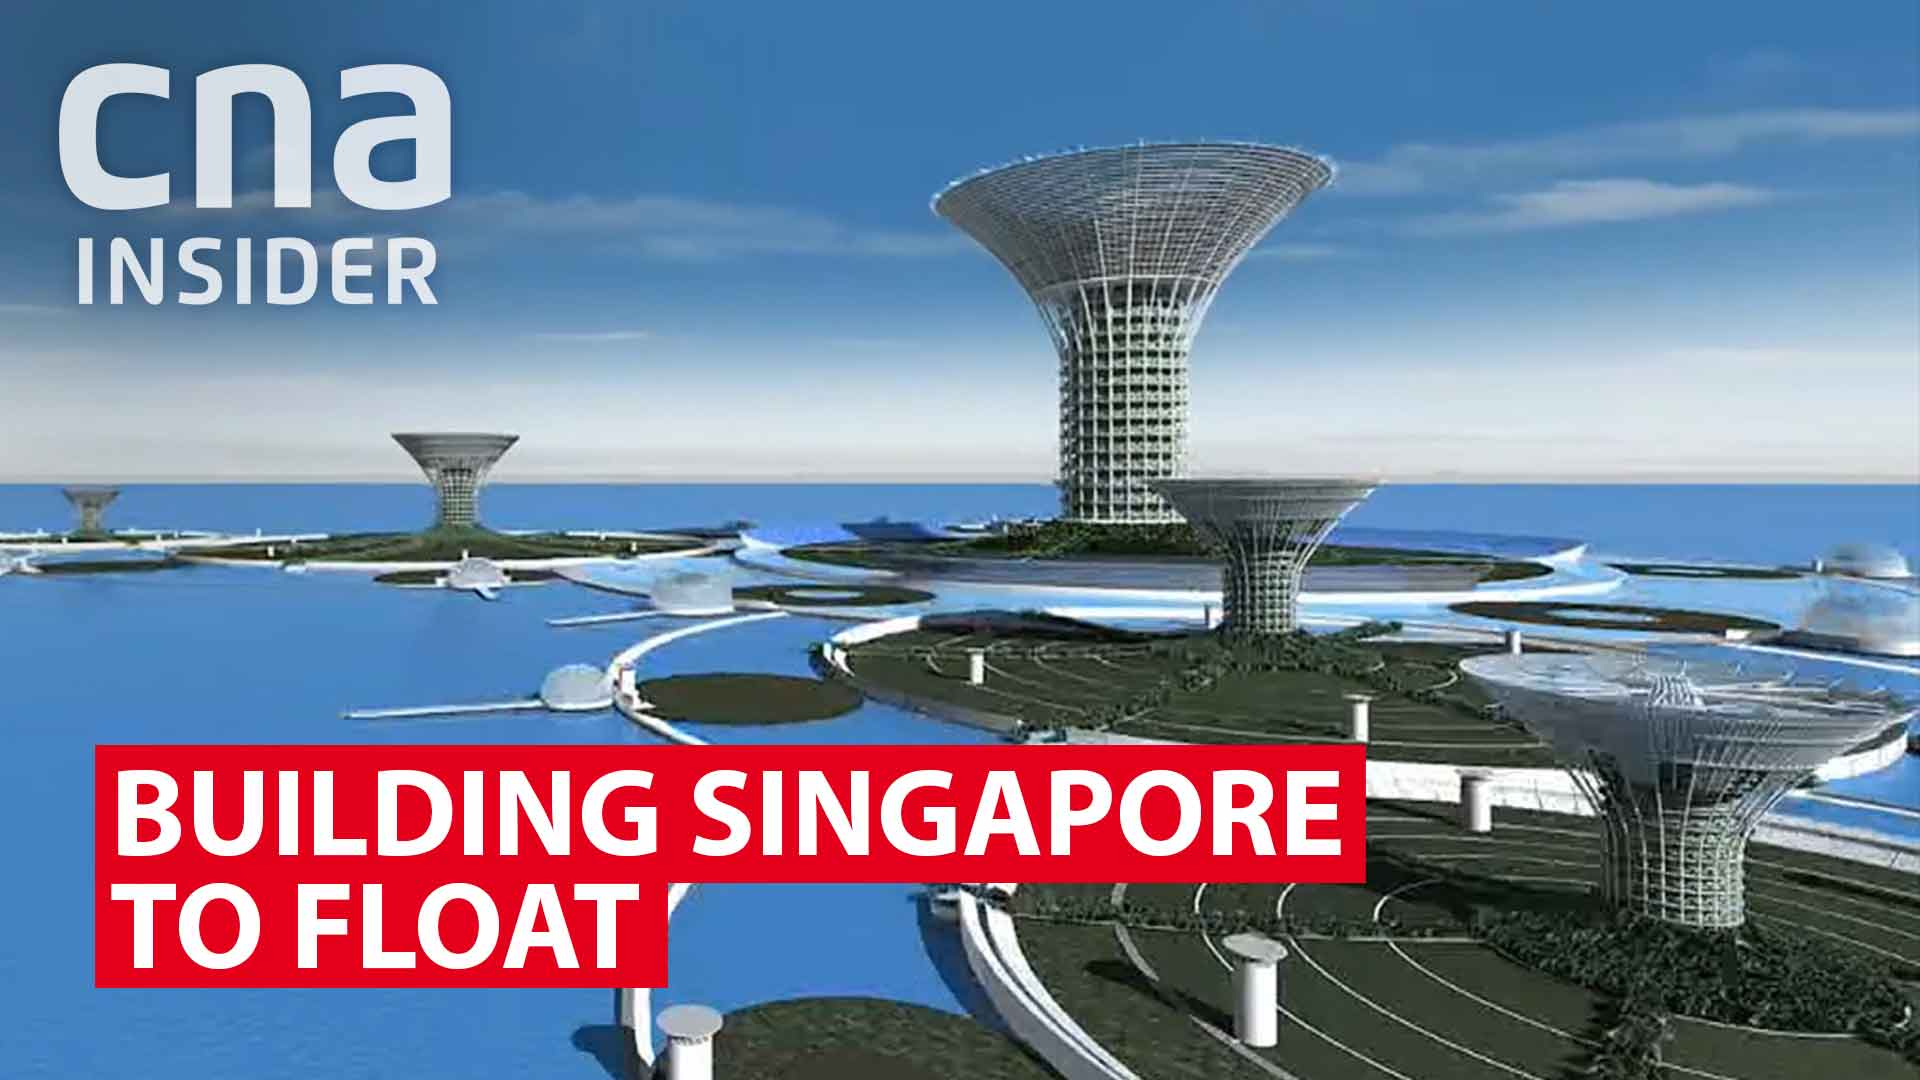 Building Singapore to float